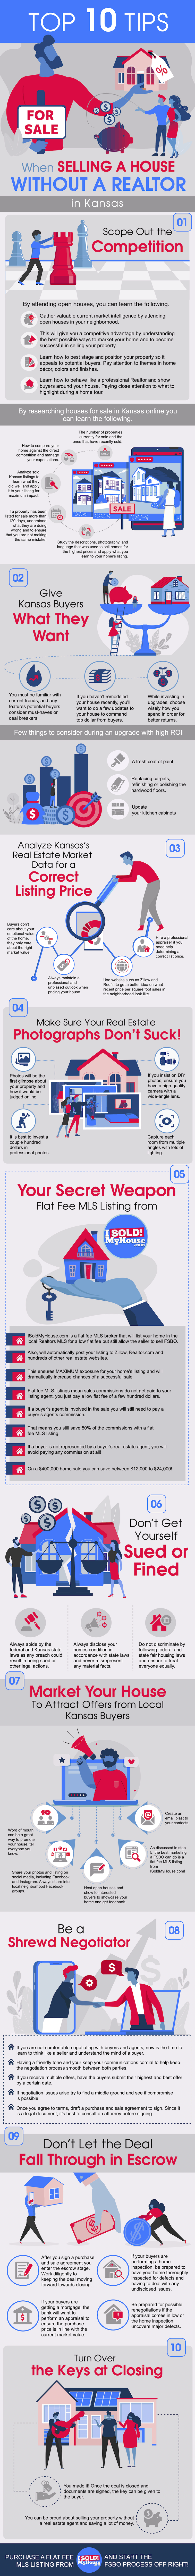 infographic of the 10 steps to sell a house in kansas without an agent